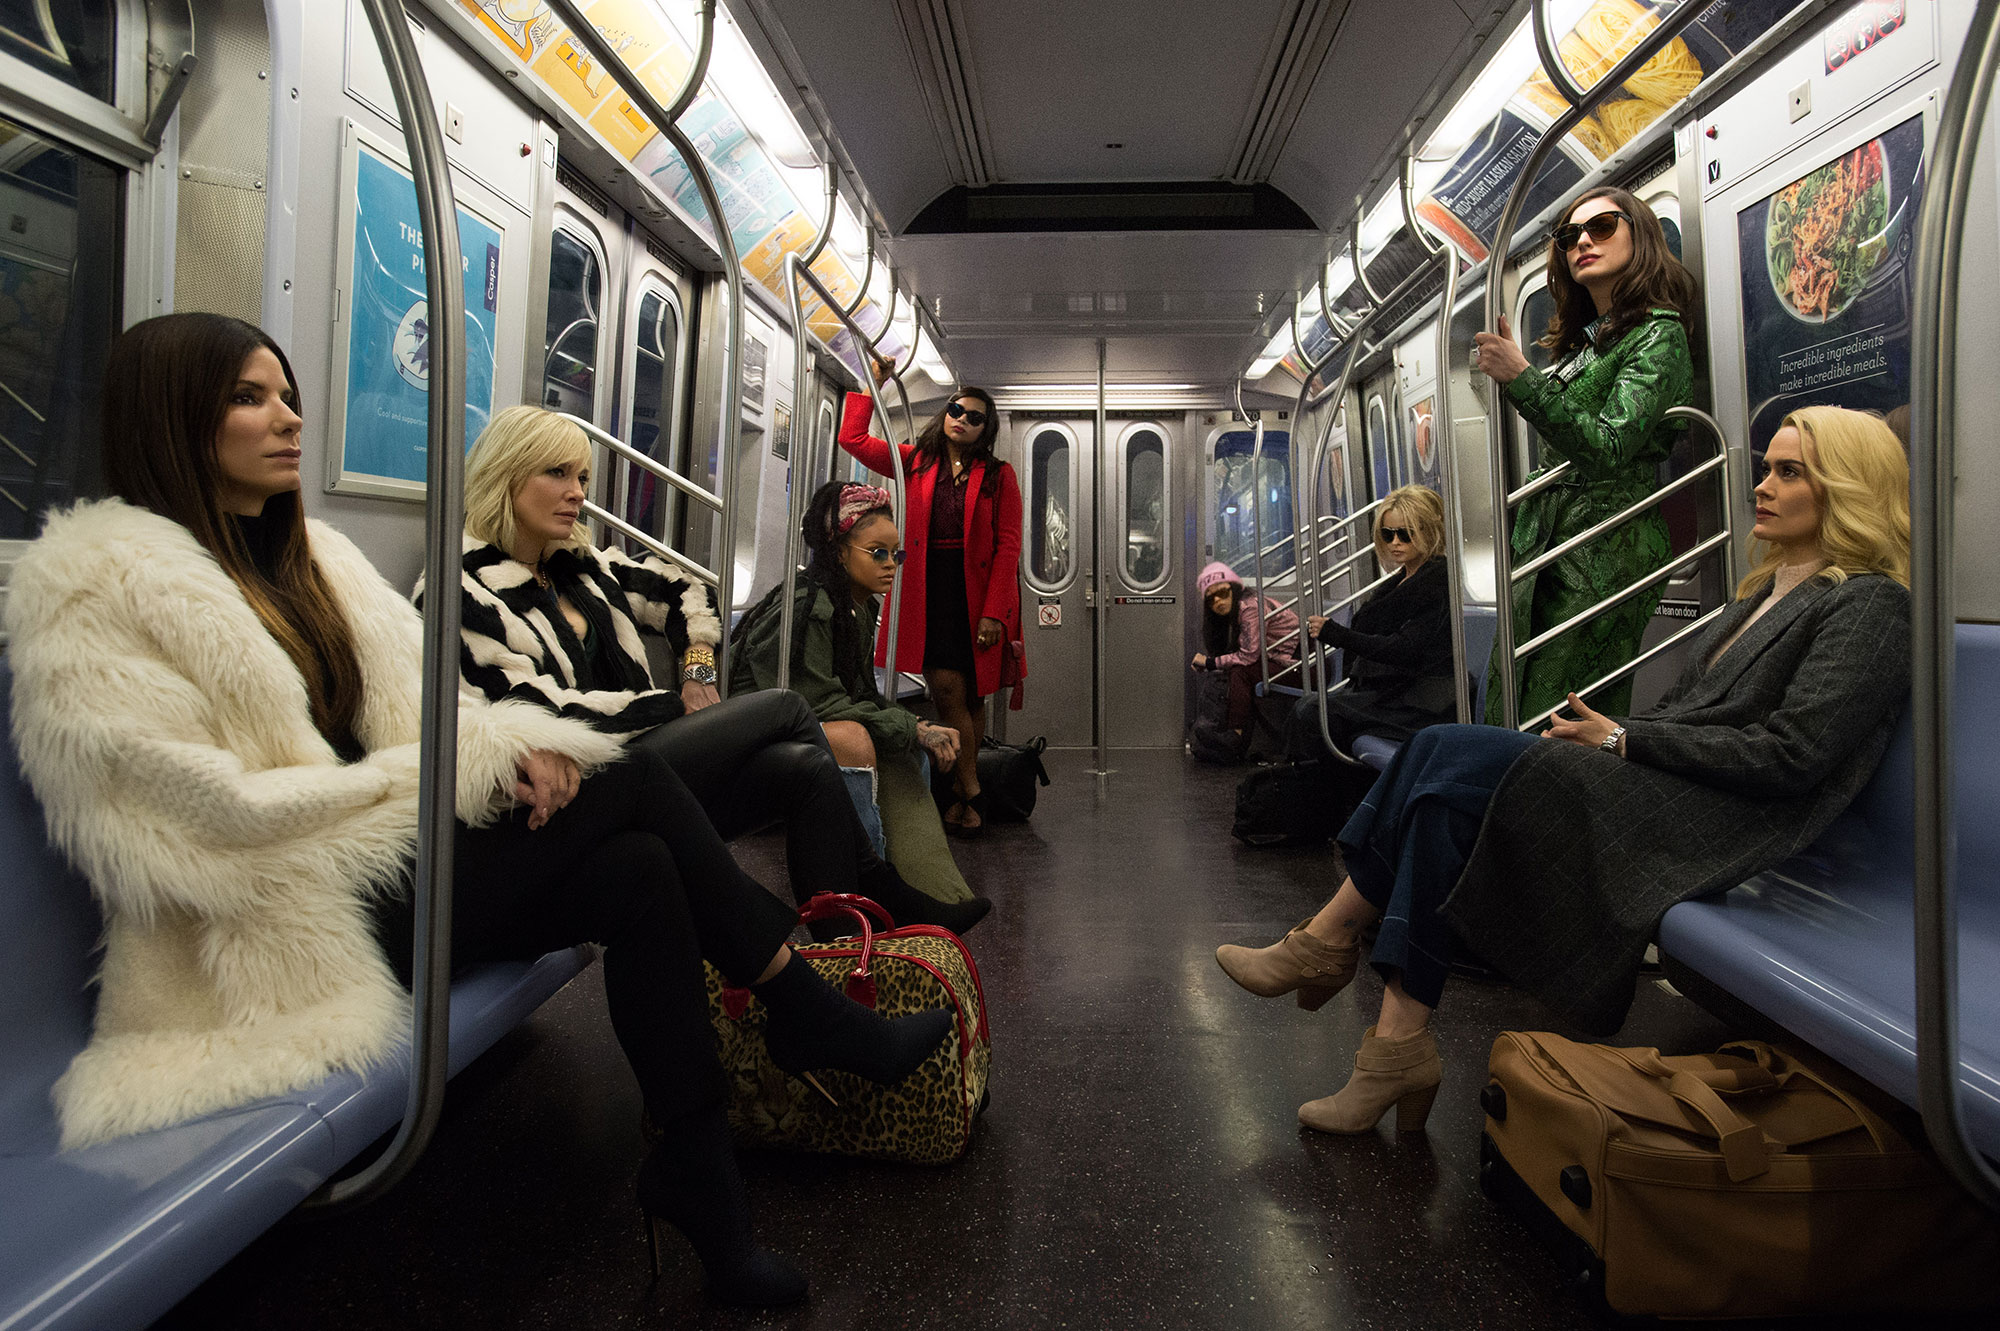 Ocean's 8 has a head for numbers